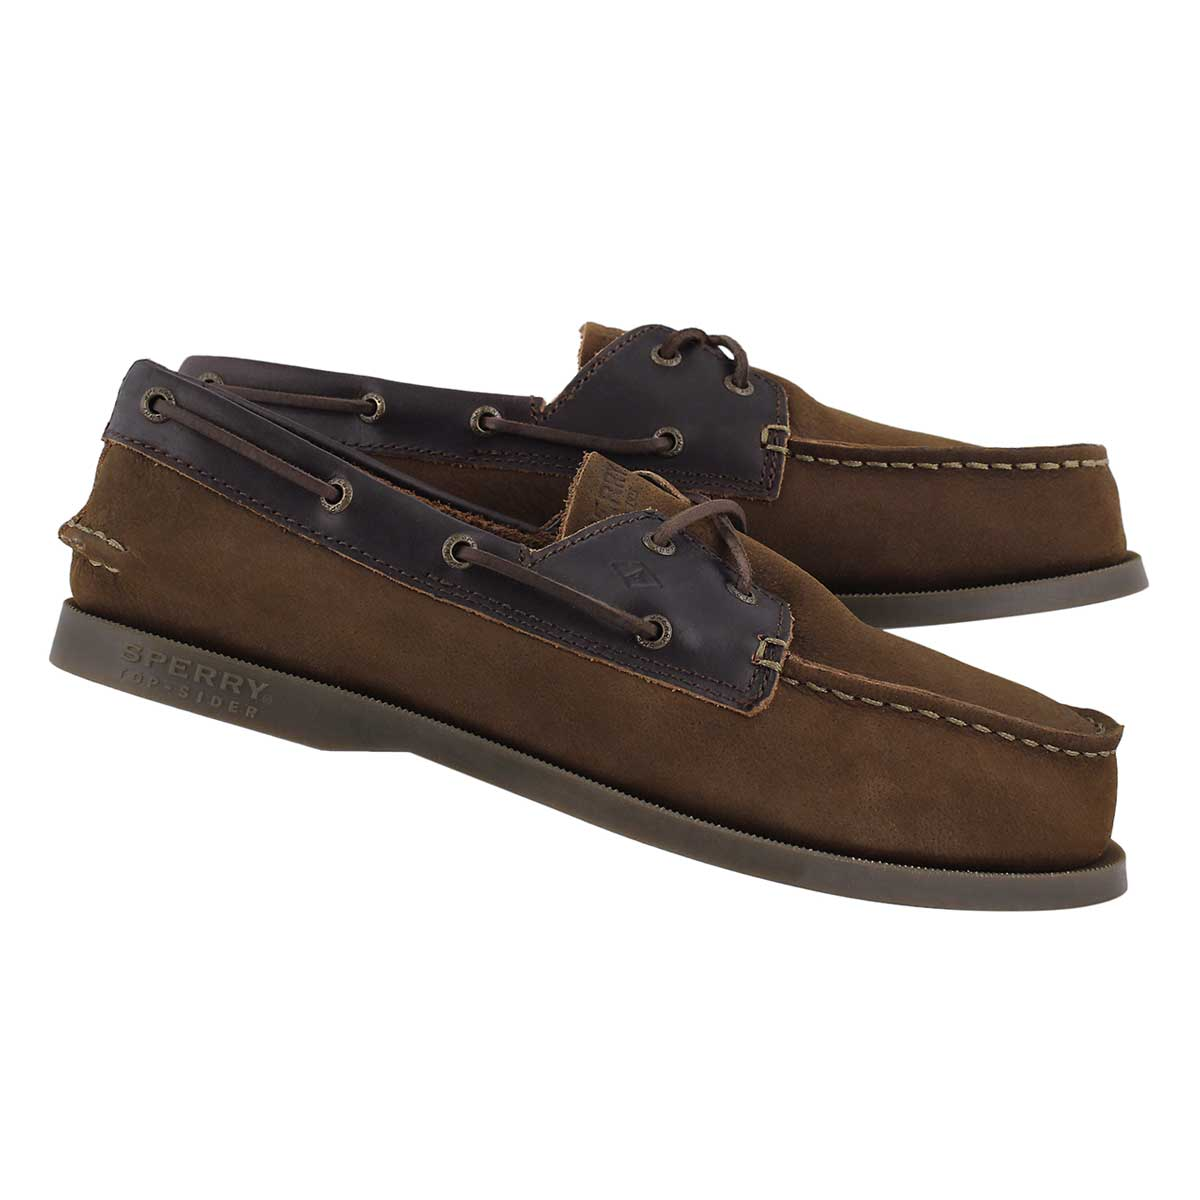 Bys A/O brown buck boat shoe